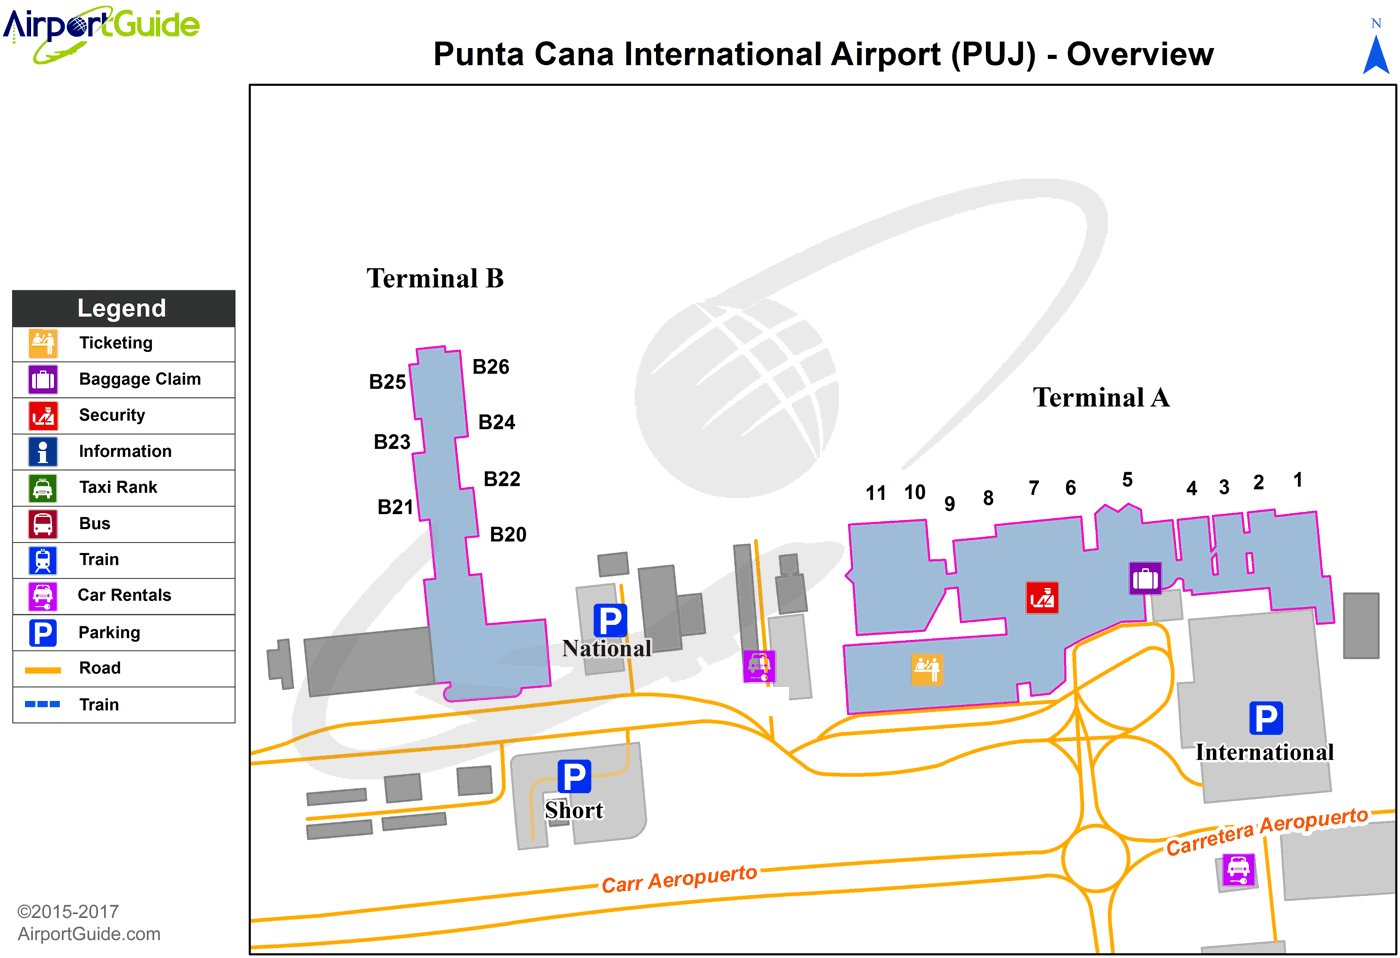 Punta Cana Punta Cana International Puj Airport Terminal Map Overview Airport Guide Airport Airports Terminal